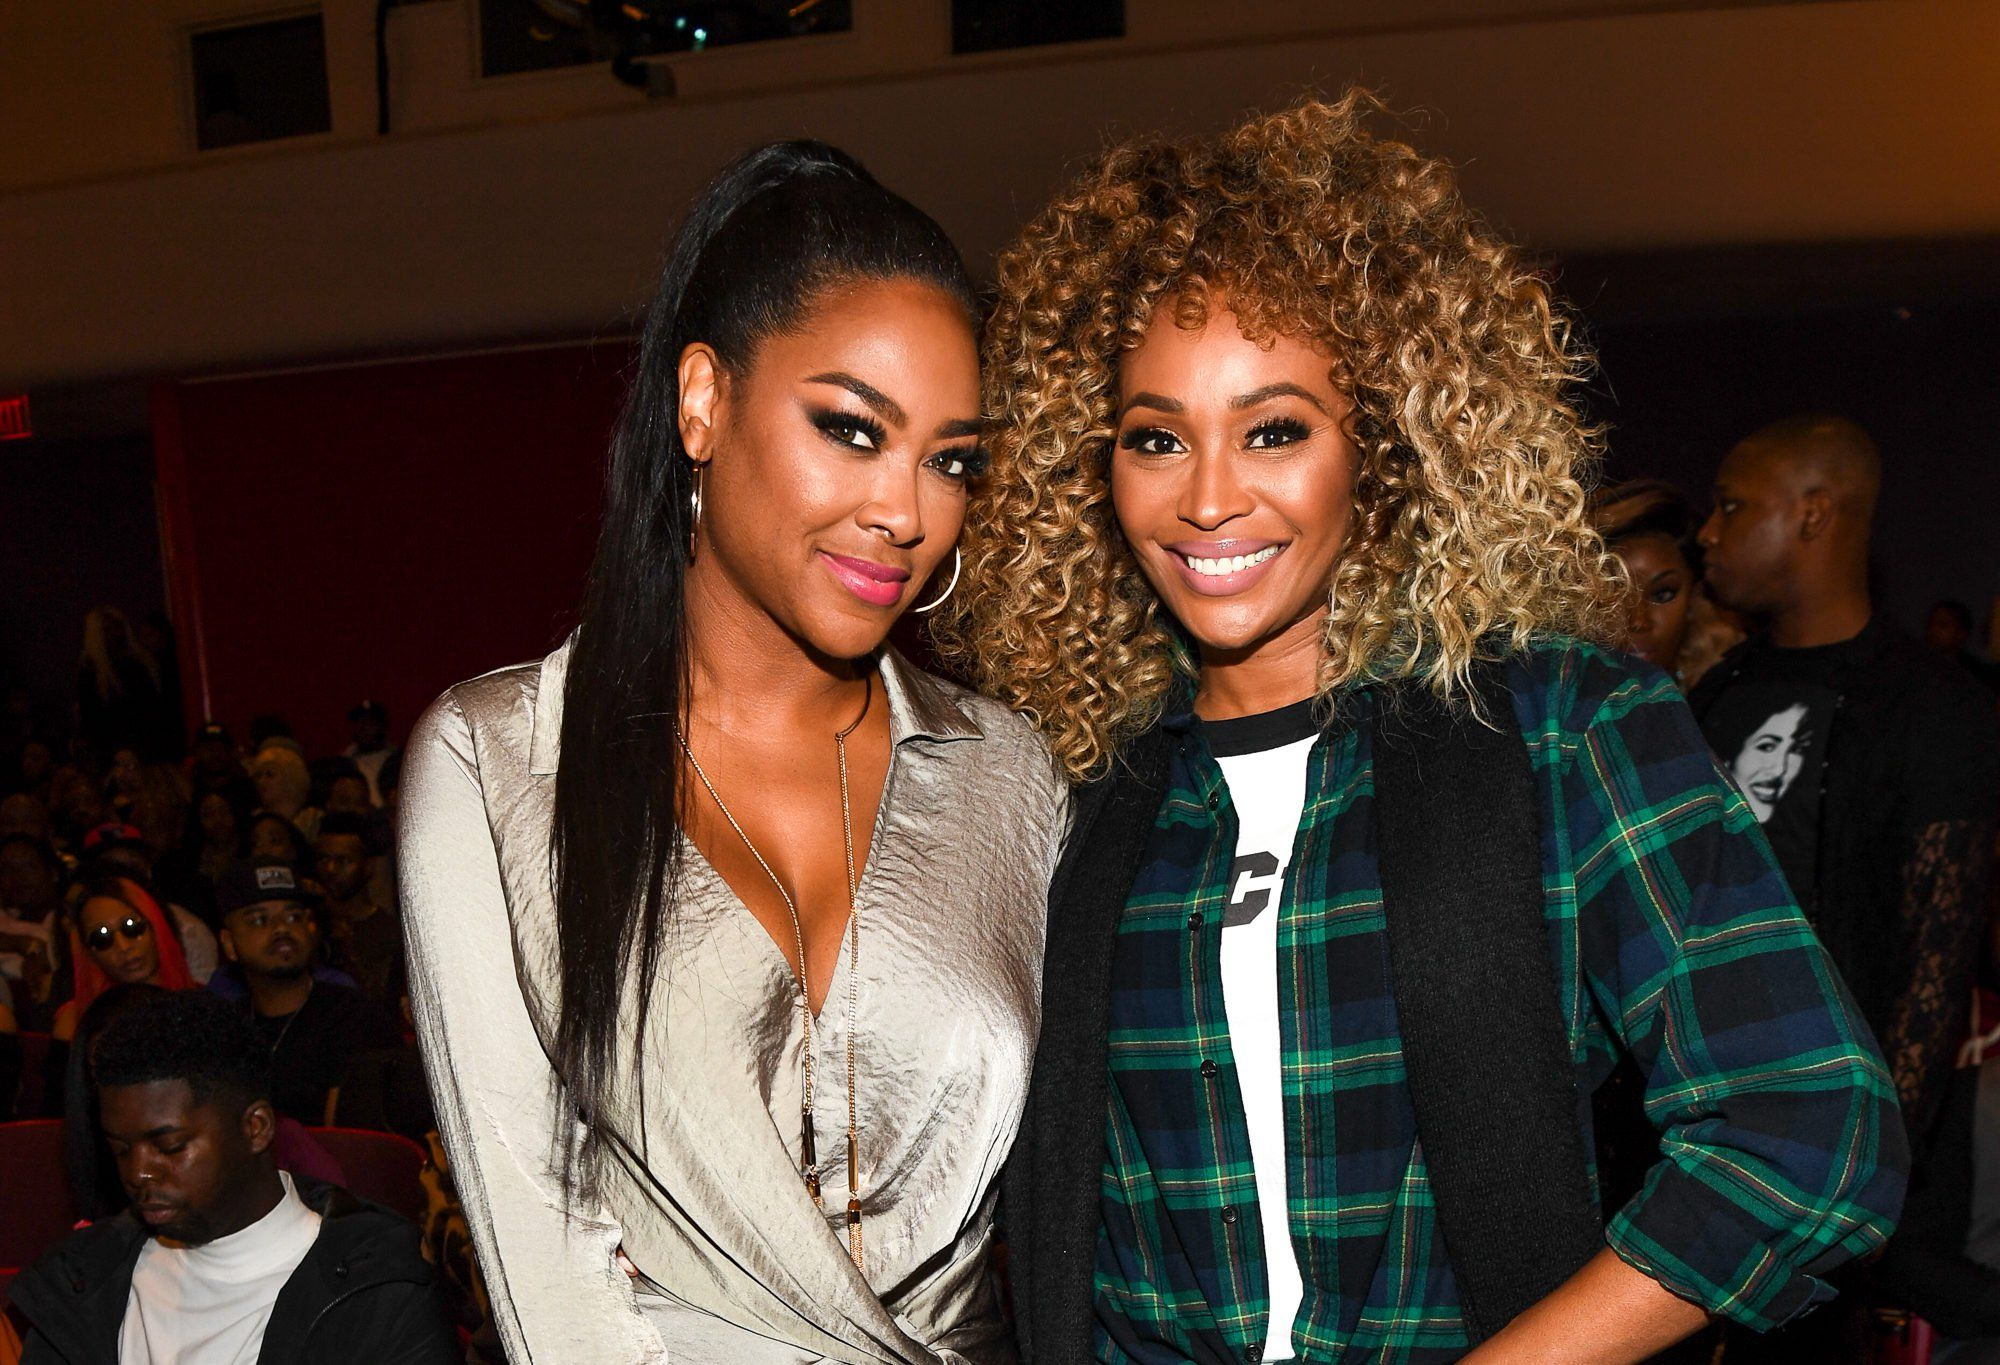 Kenya Moore And Cynthia Bailey Are Chocolate Sisters In This Latest Photo